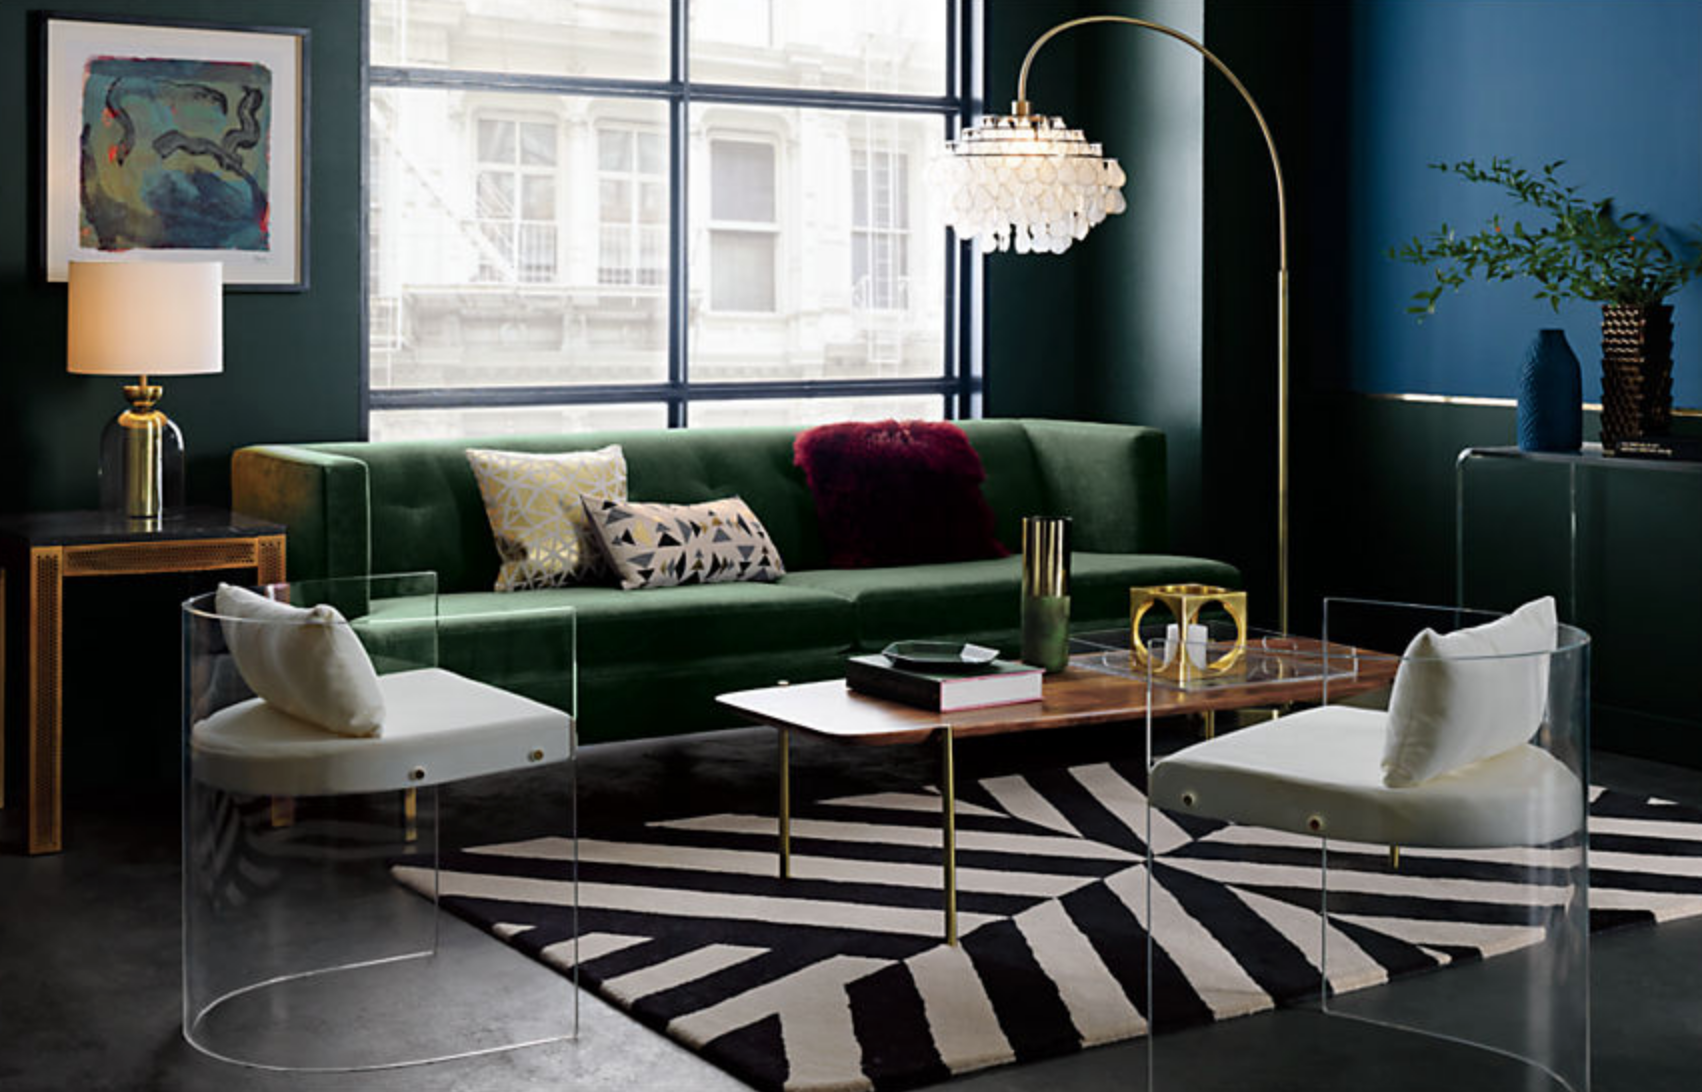 15 Best Sofas For Small Spaces Stylish Apartment Sized Couches Apartment Therapy